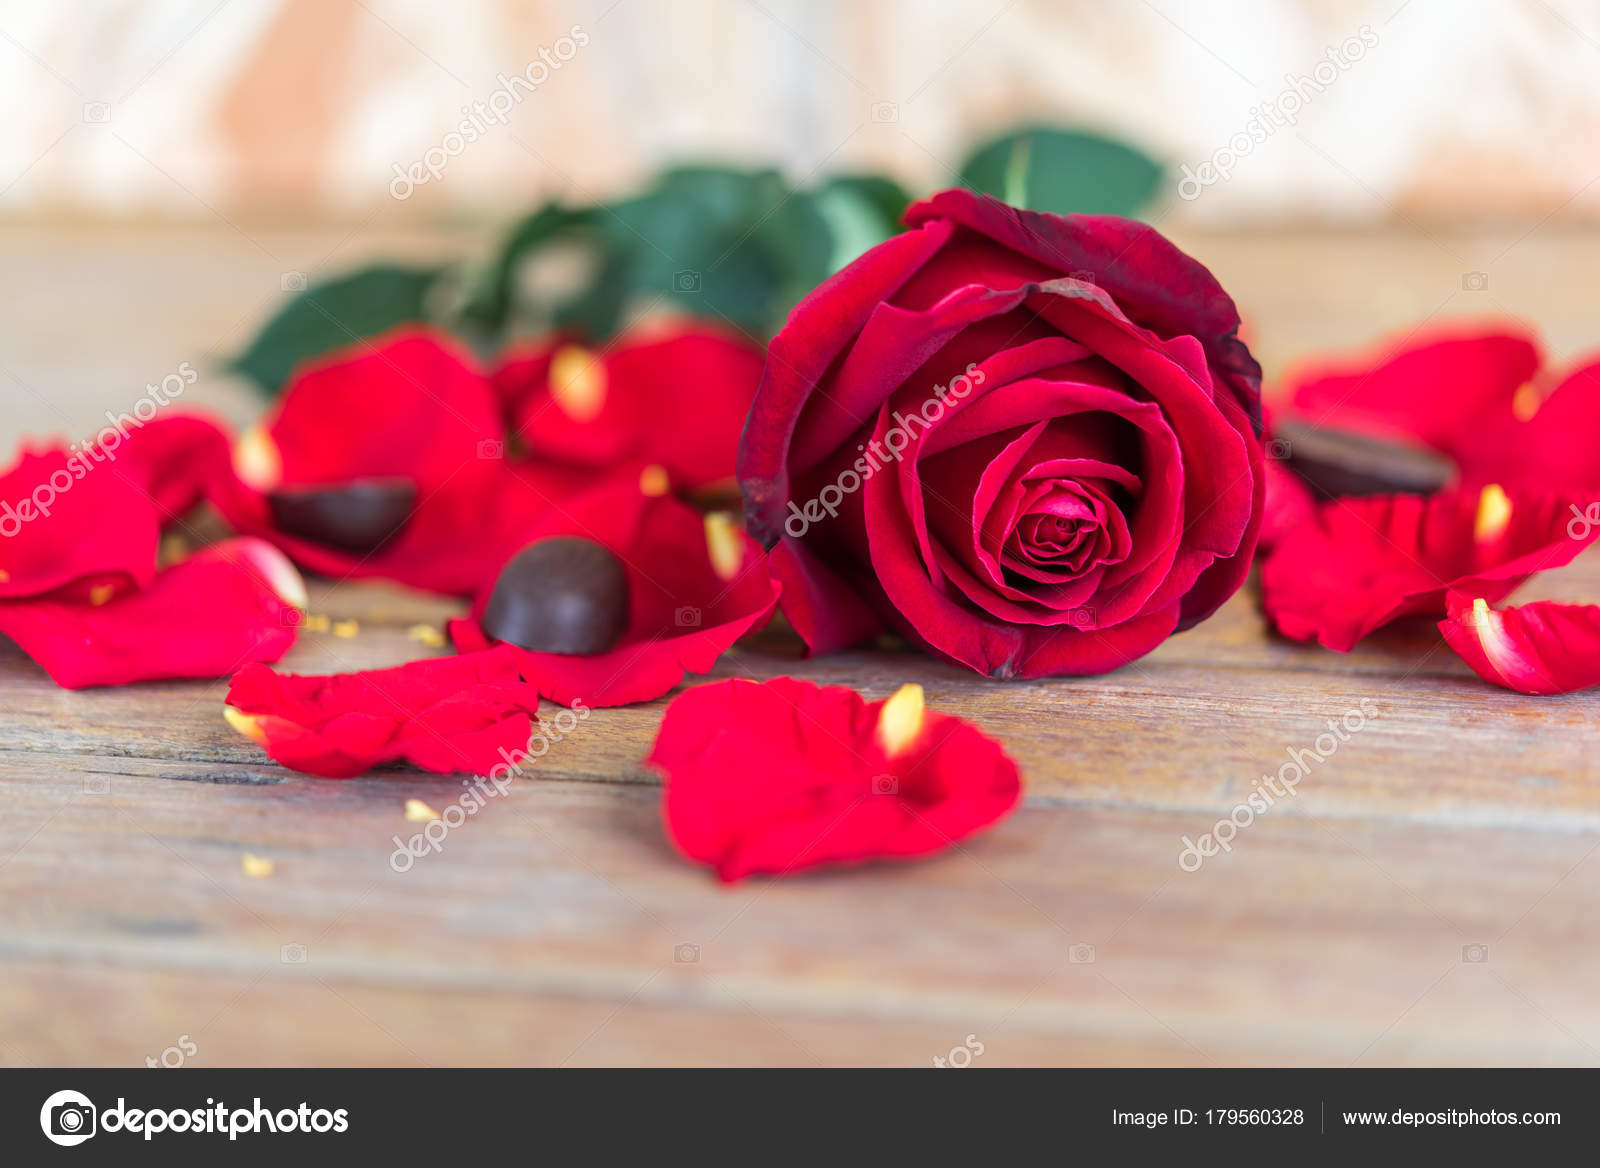 Red rose flower on wooden floor in valentines day stock photo red rose flower nature beautiful flowers from the garden and petal of red rose flower and chocolate on wooden floor with copy space in valentines day izmirmasajfo